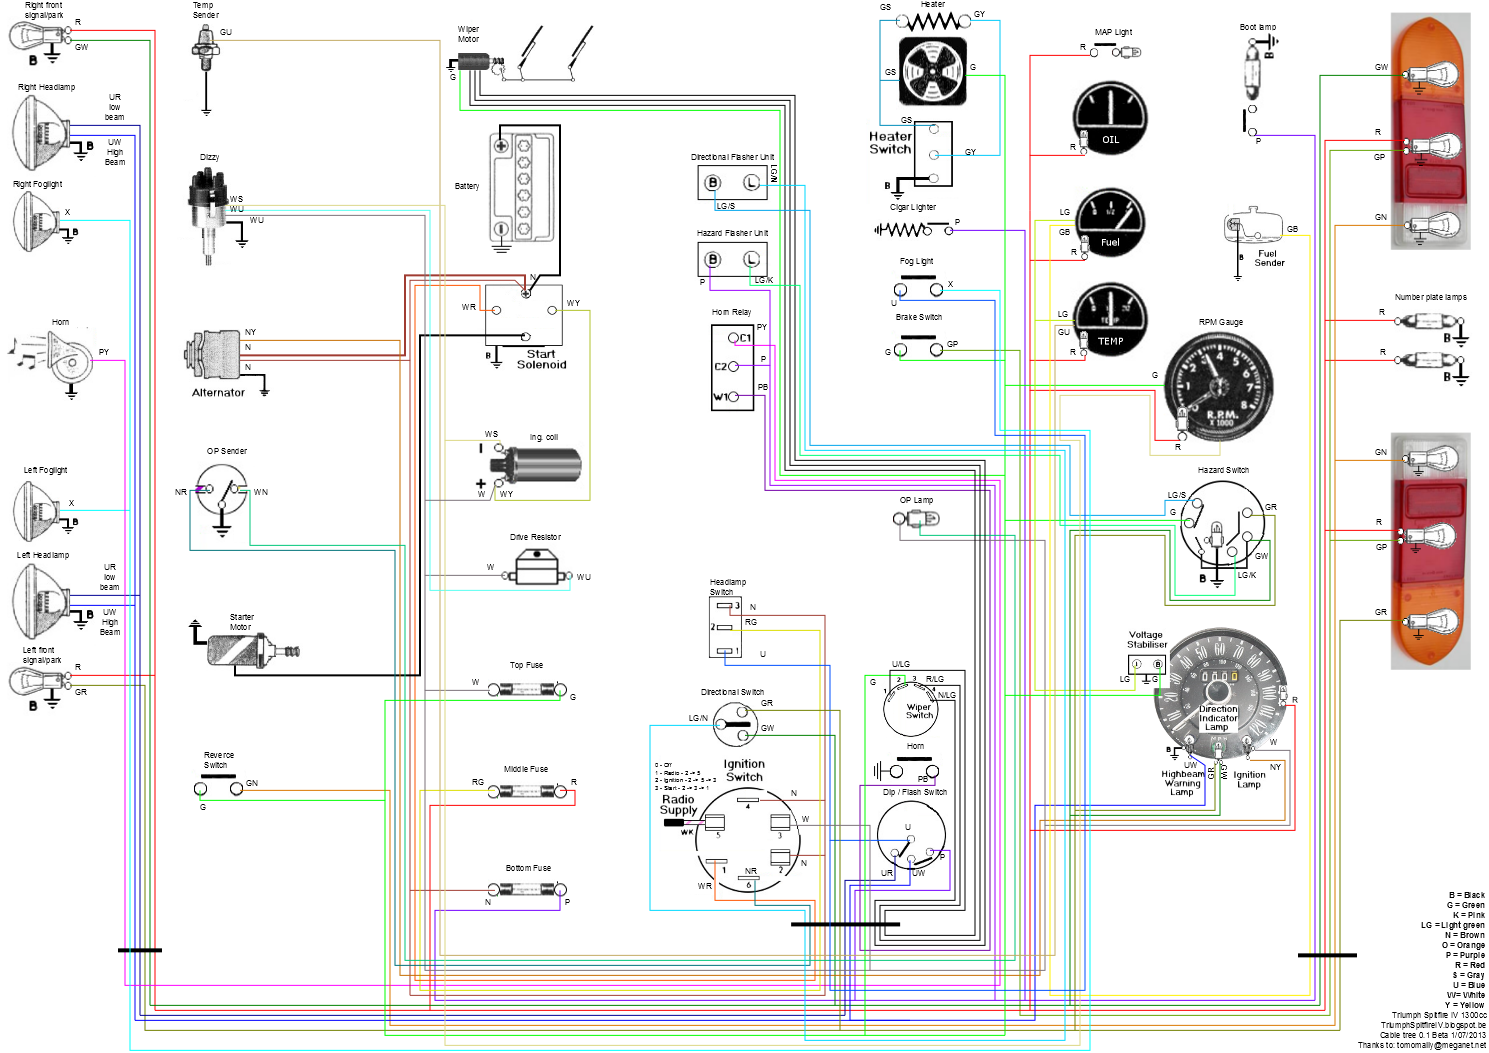 spitfire iv wiring diagram mk4 wiring diagram mk4 tdi wiring diagram \u2022 wiring diagrams j mk4 jetta abs wiring diagram at n-0.co